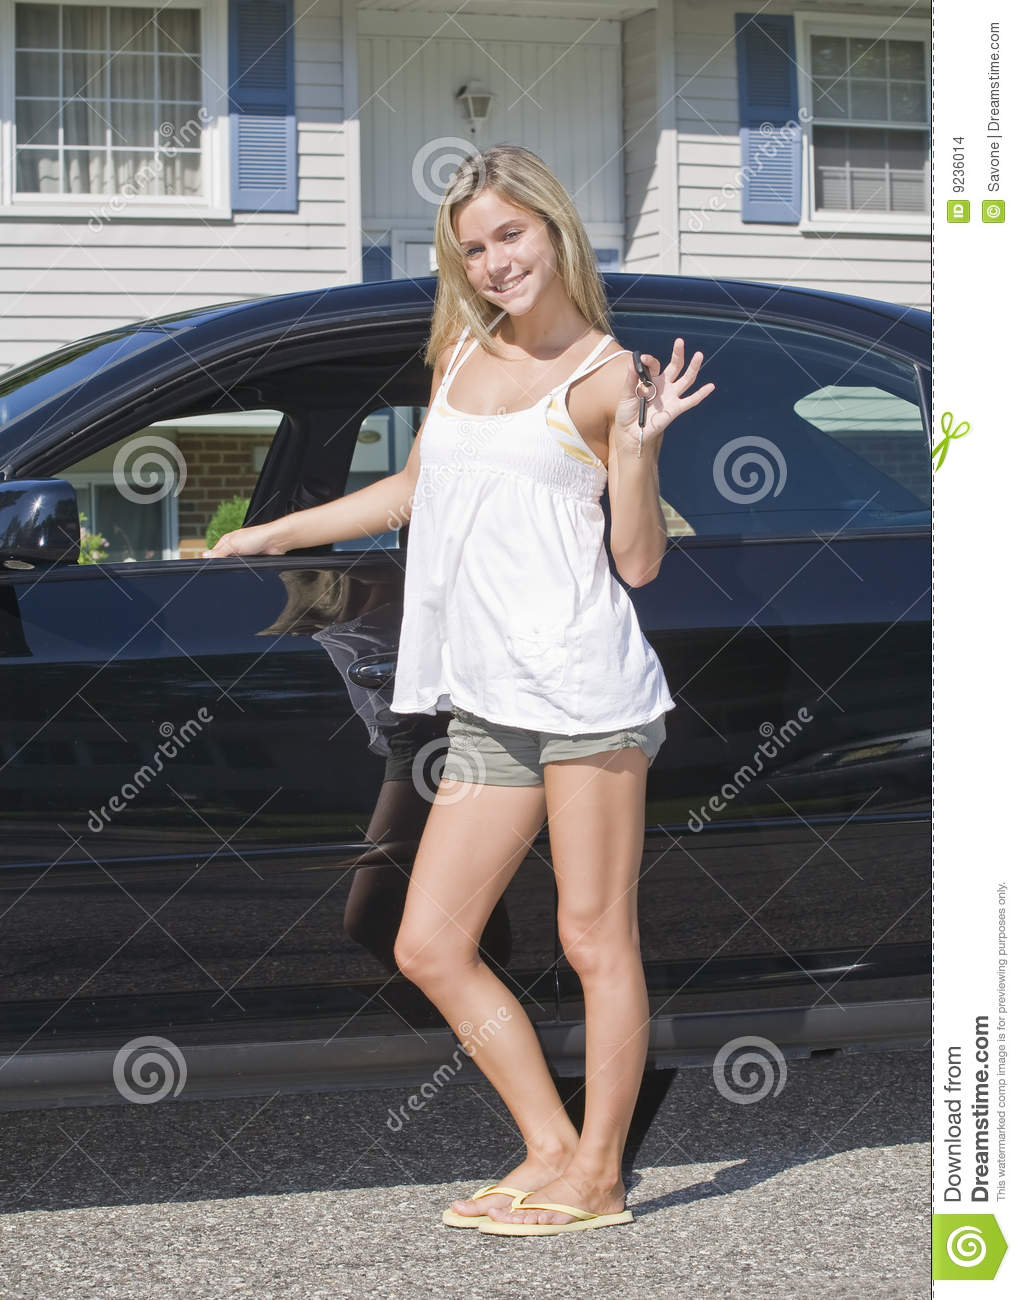 First Time Driver >> First Time Driver Stock Photo Image Of Smile Learn Inside